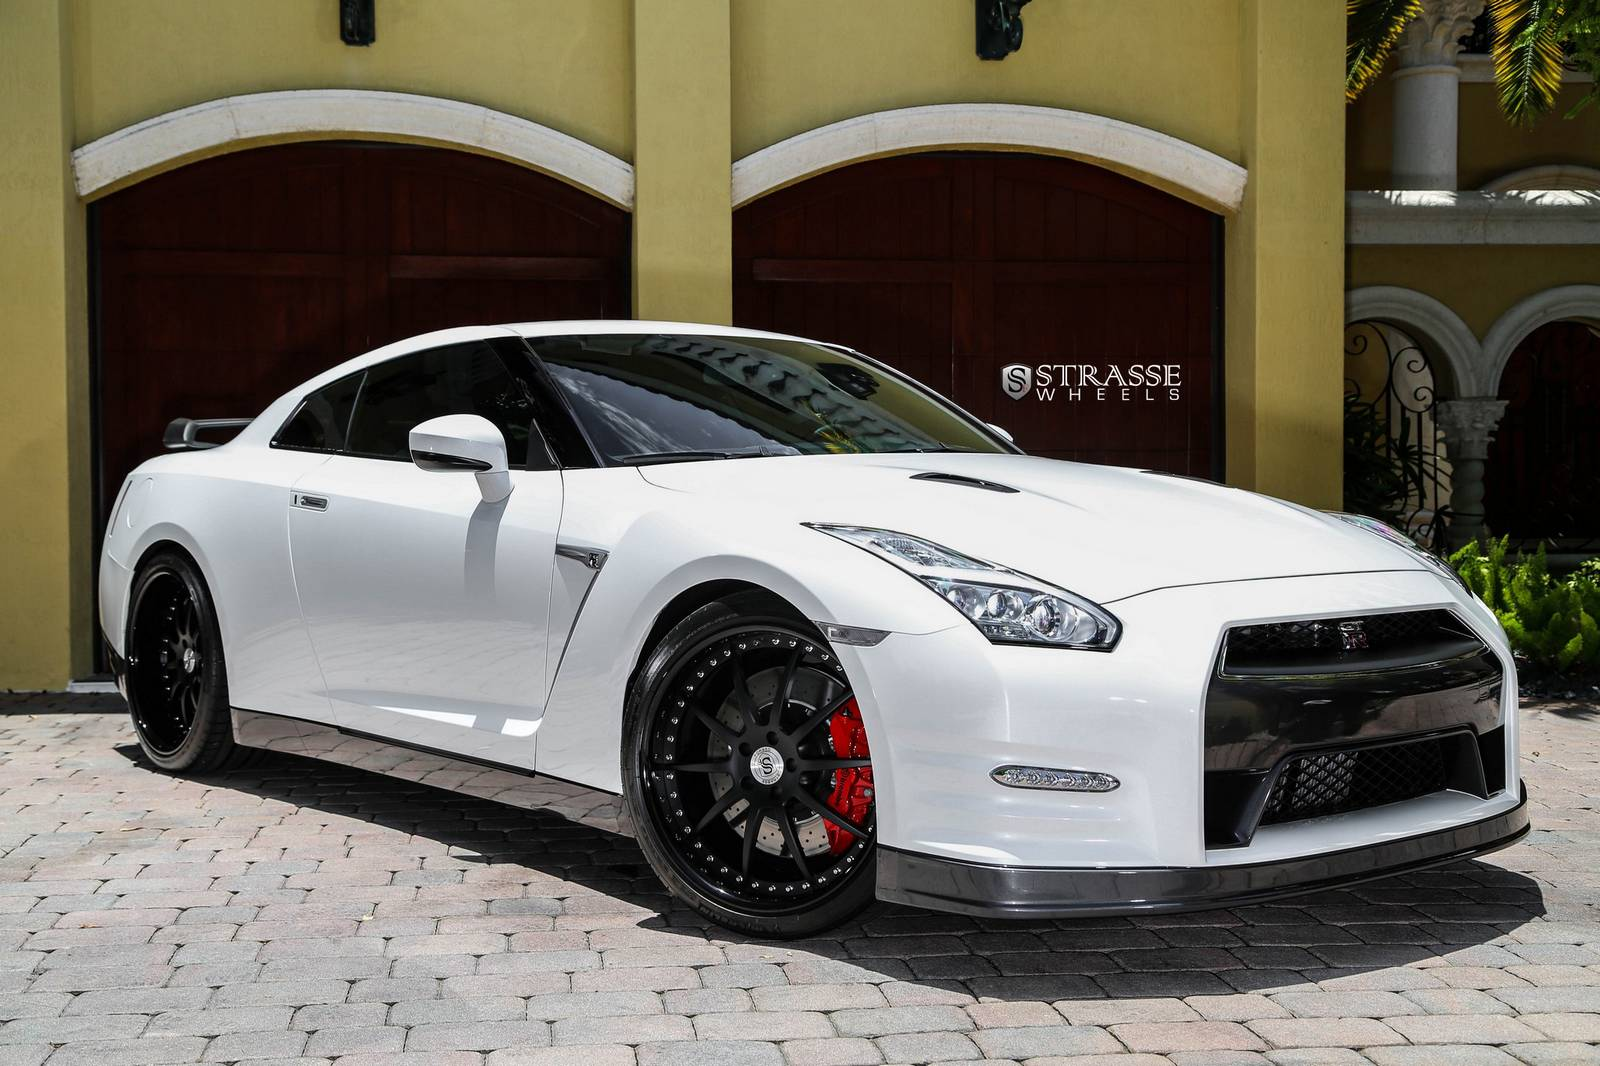 pearl white 2015 nissan gt r black edition with r10 strasse wheels gtspirit. Black Bedroom Furniture Sets. Home Design Ideas